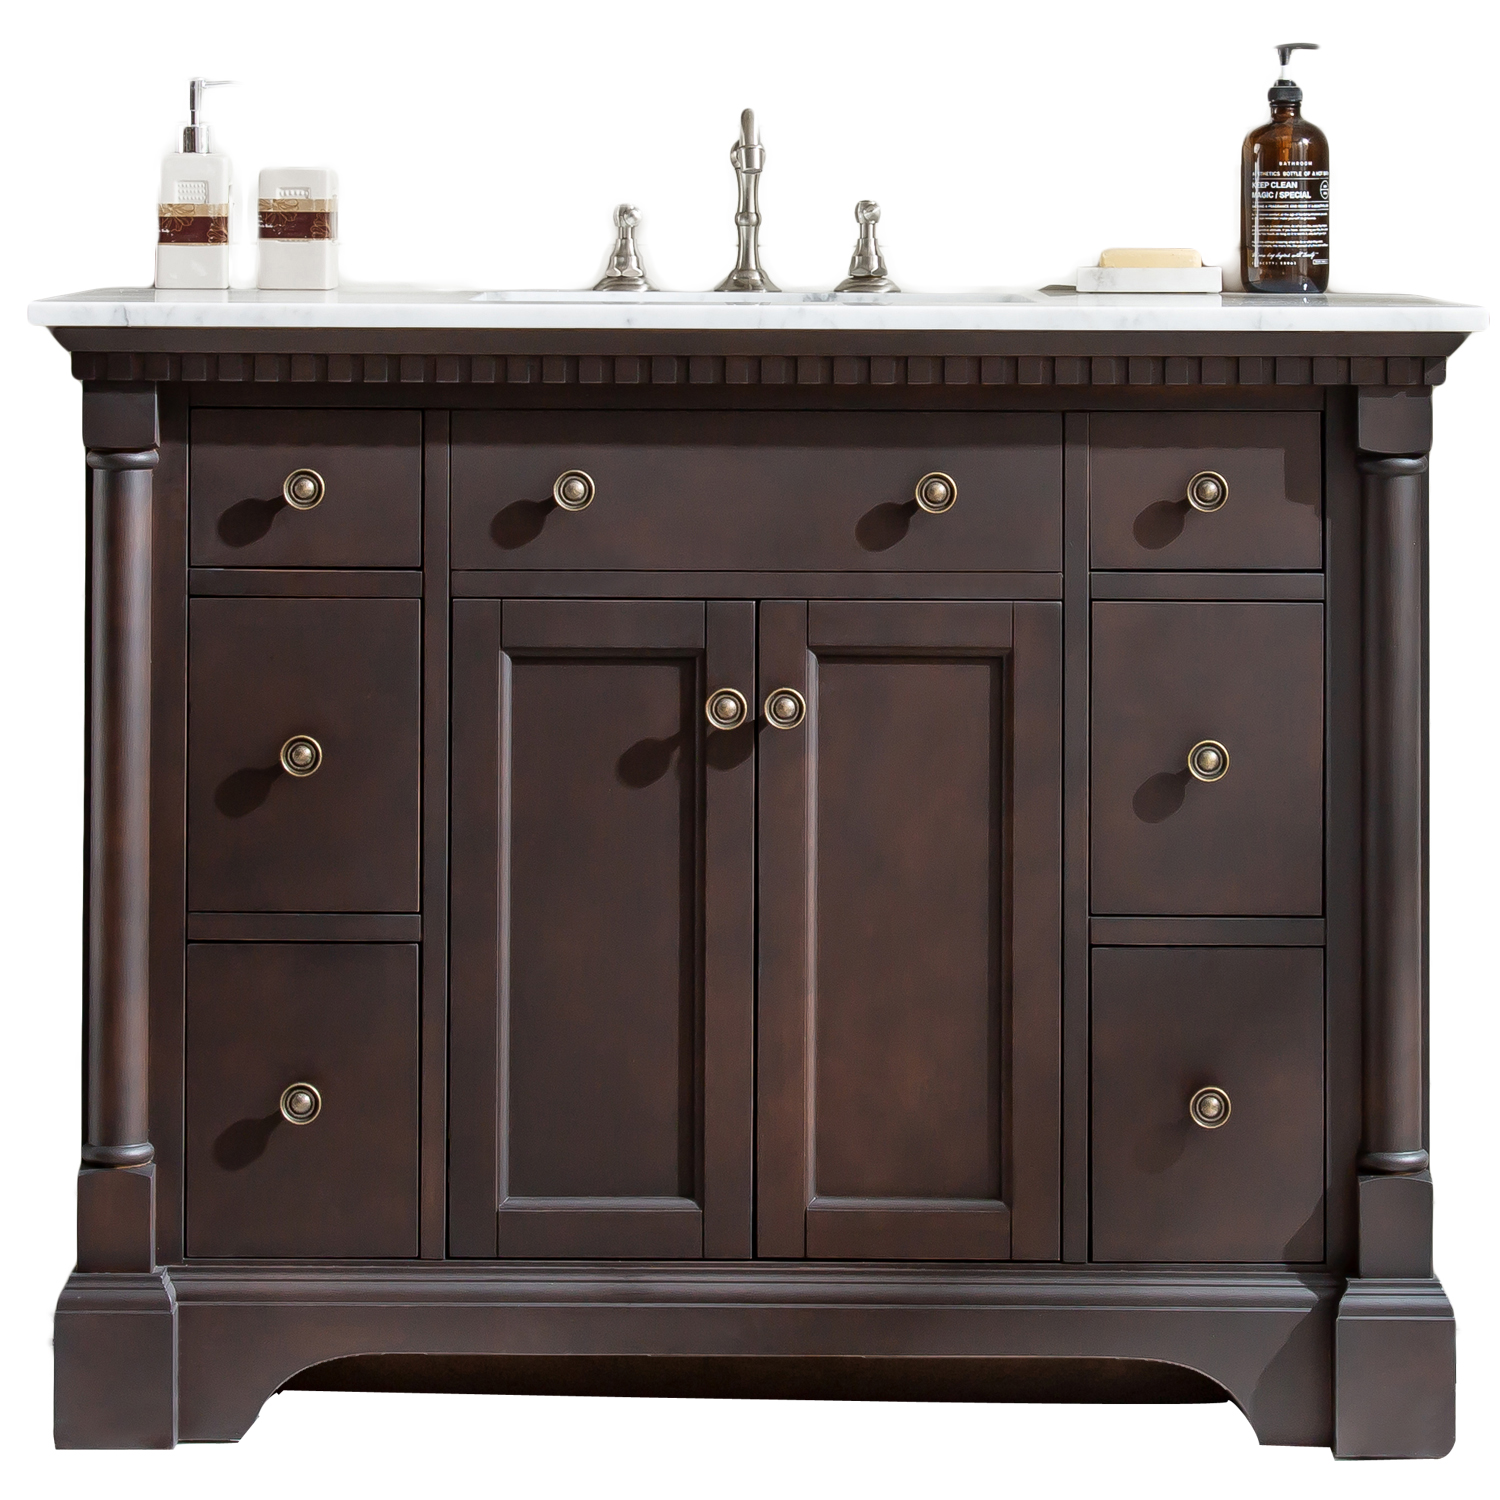 Eviva Preston 49 In Aged Chocolate Bathroom Vanity With White Carrara Marble Countertop And Undermount Sink